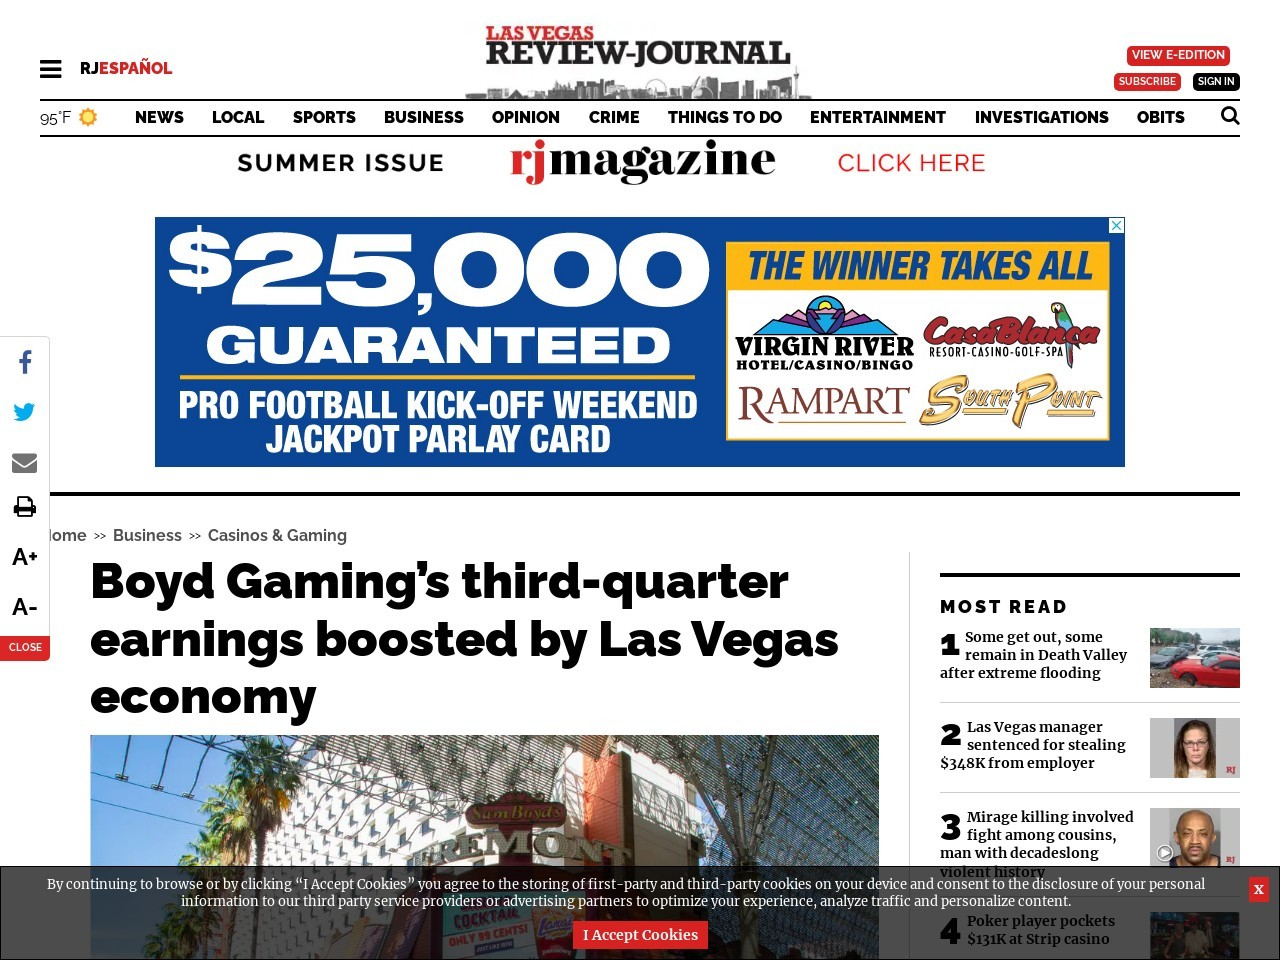 Boyd Gaming's third-quarter earnings boosted by Las Vegas economy